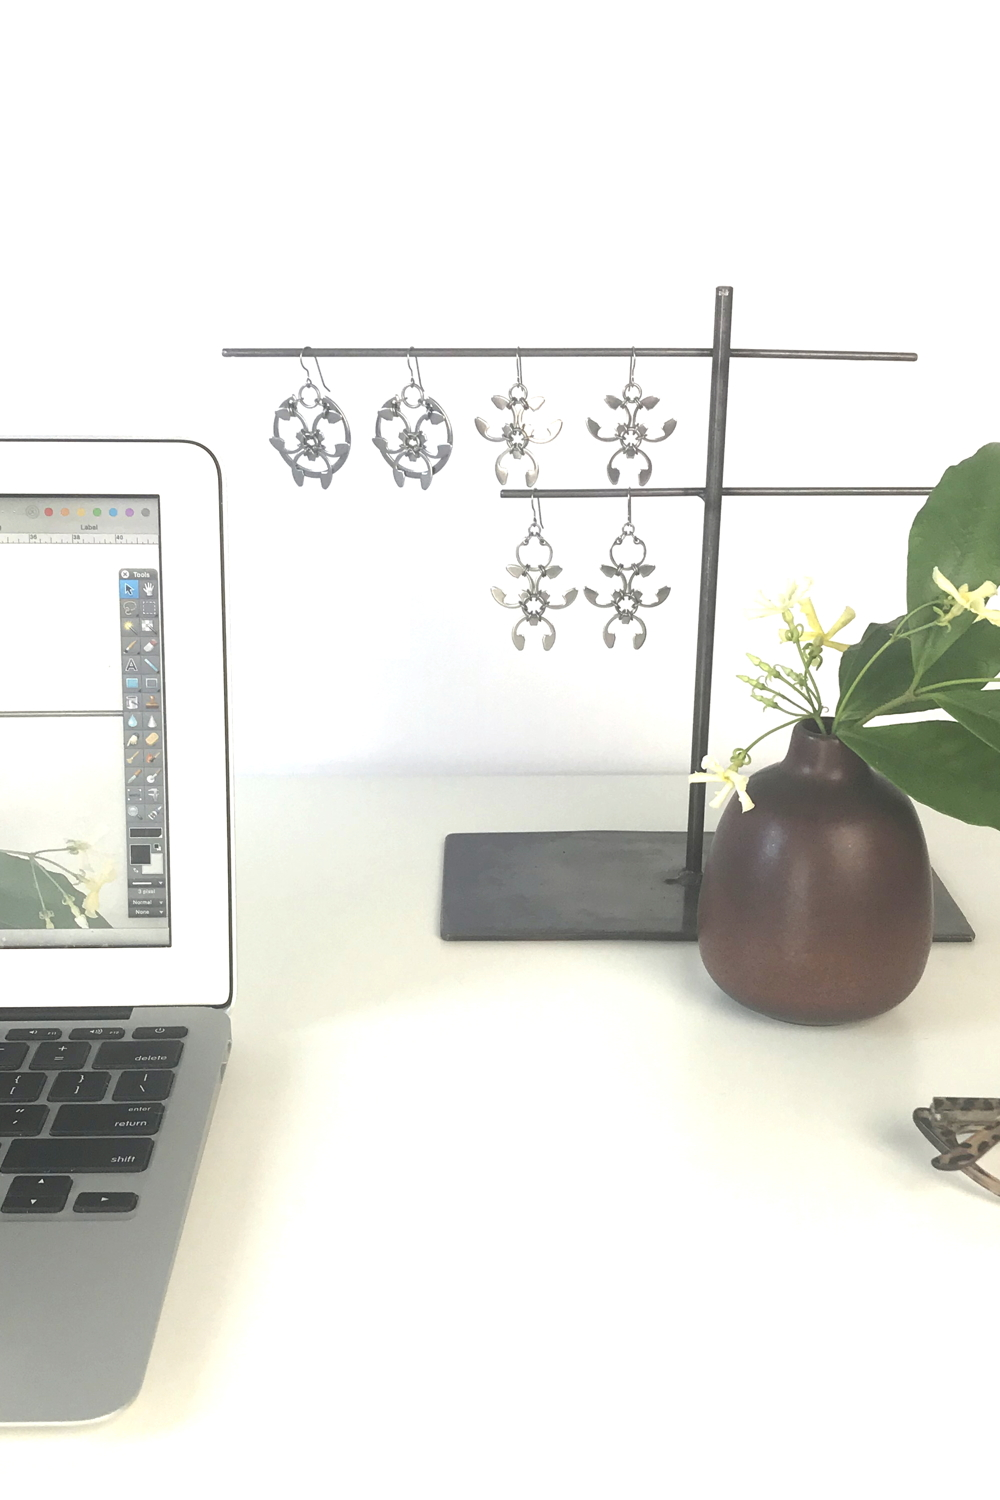 Pale yellow star jasmine (Trachelospermum asiaticum) flowers and green leaves in a bud vase by Heath Ceramics on a desk in Wraptillion's studio workspace, with the modern botanical-inspired Rose Window Earrings, Trellis Earrings, and Garland Earrings, reading glasses, and an open laptop..